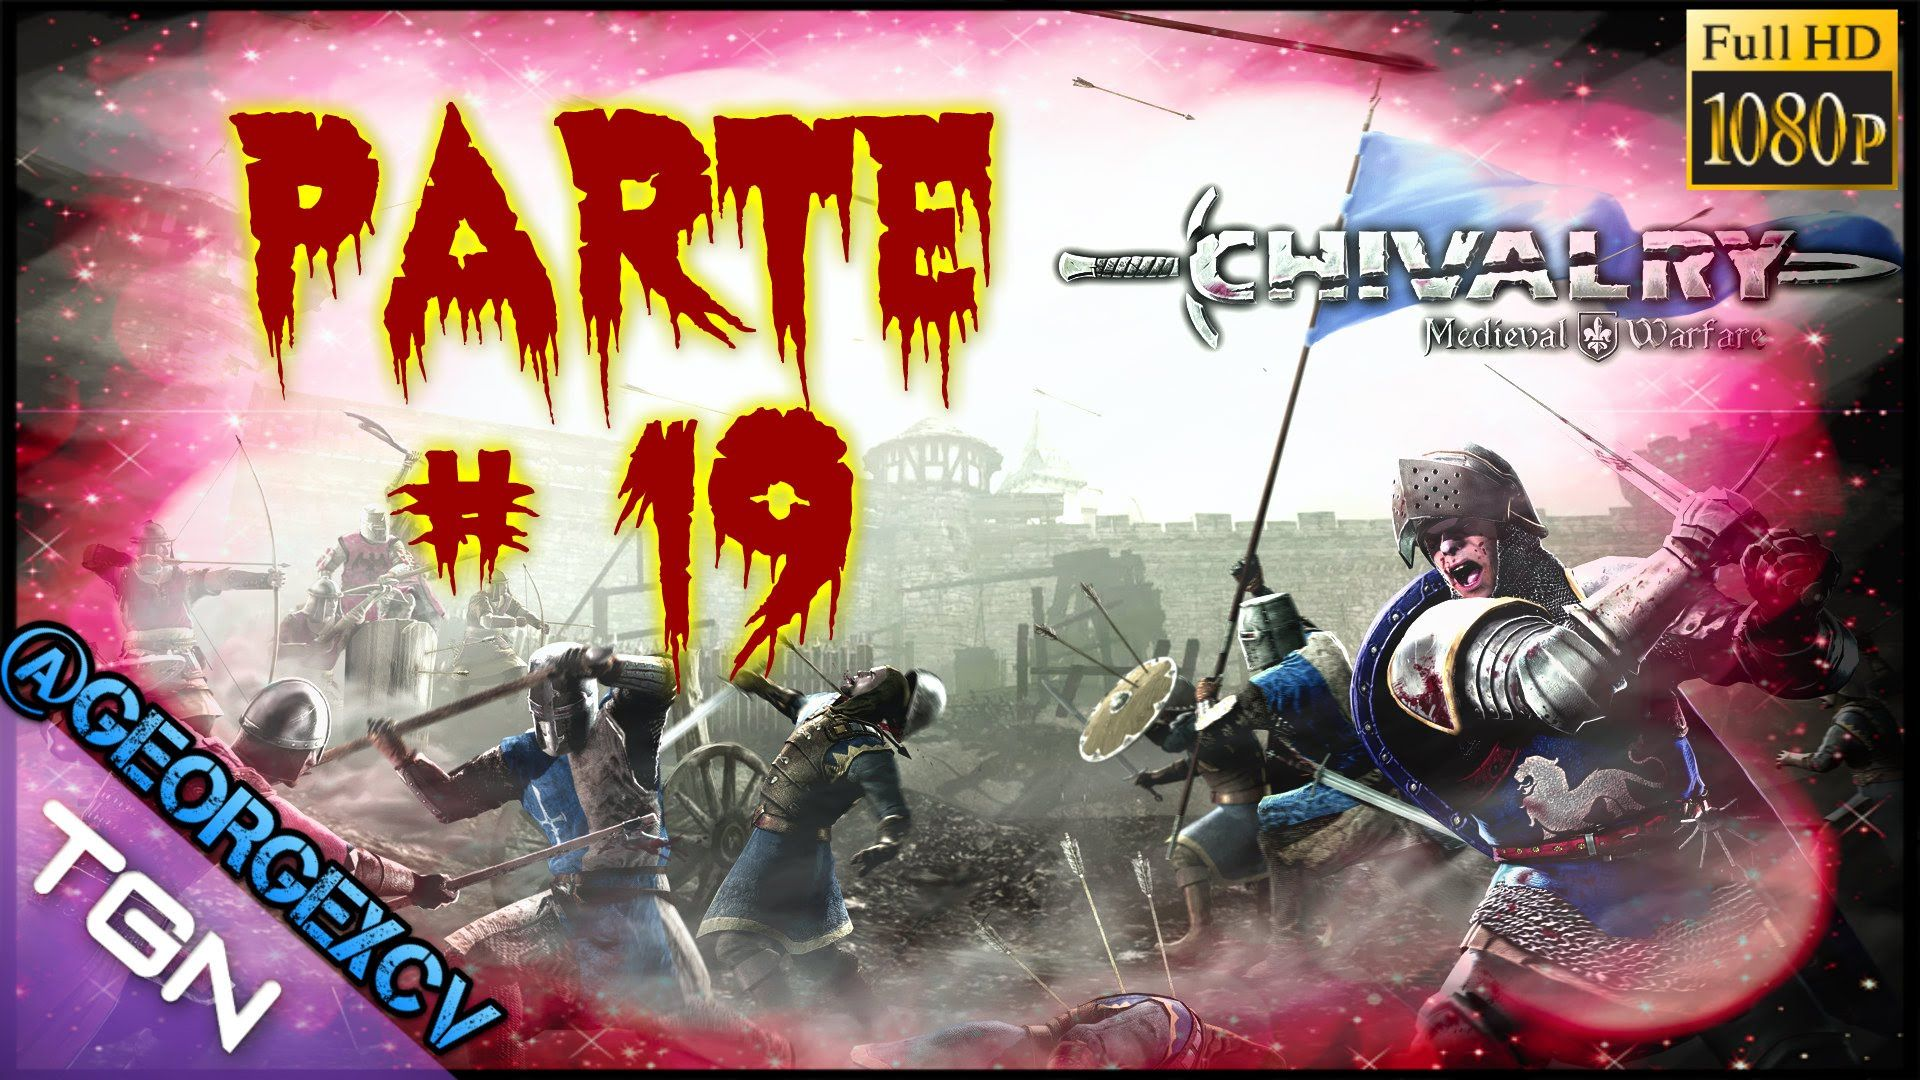 Chivalry Medieval Warfare let's play #19 1080p 2.0 @georgexcv